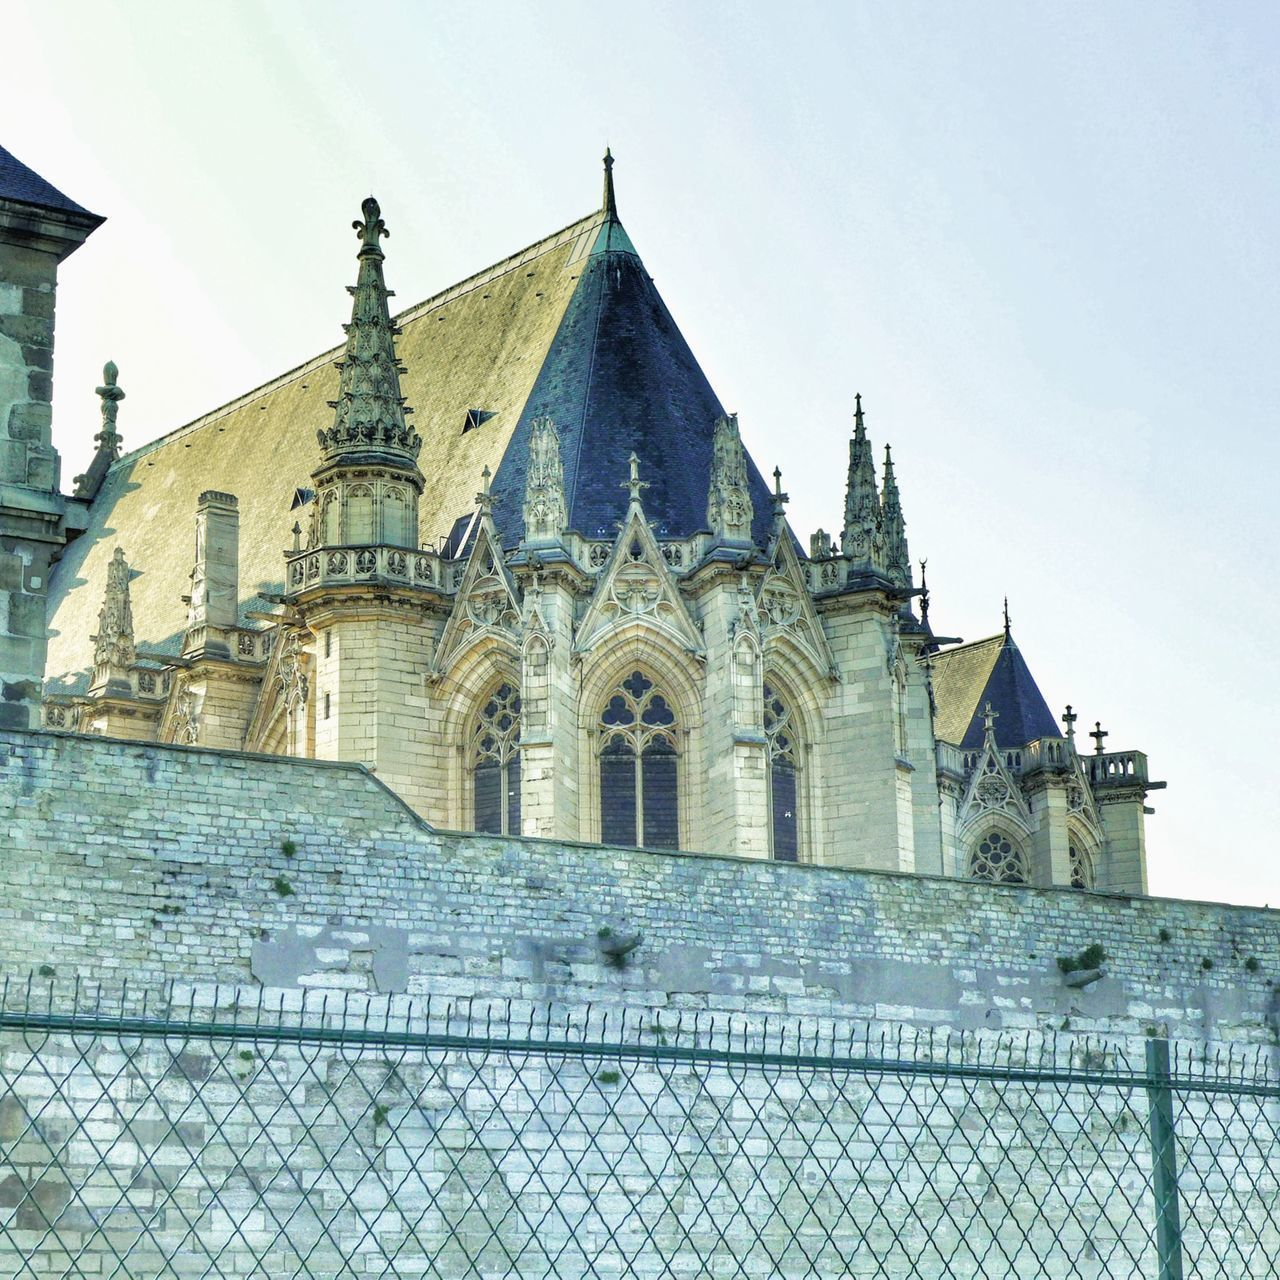 architecture, building exterior, built structure, sky, building, place of worship, fence, spirituality, religion, low angle view, boundary, barrier, nature, belief, the past, travel destinations, history, no people, outdoors, gothic style, spire